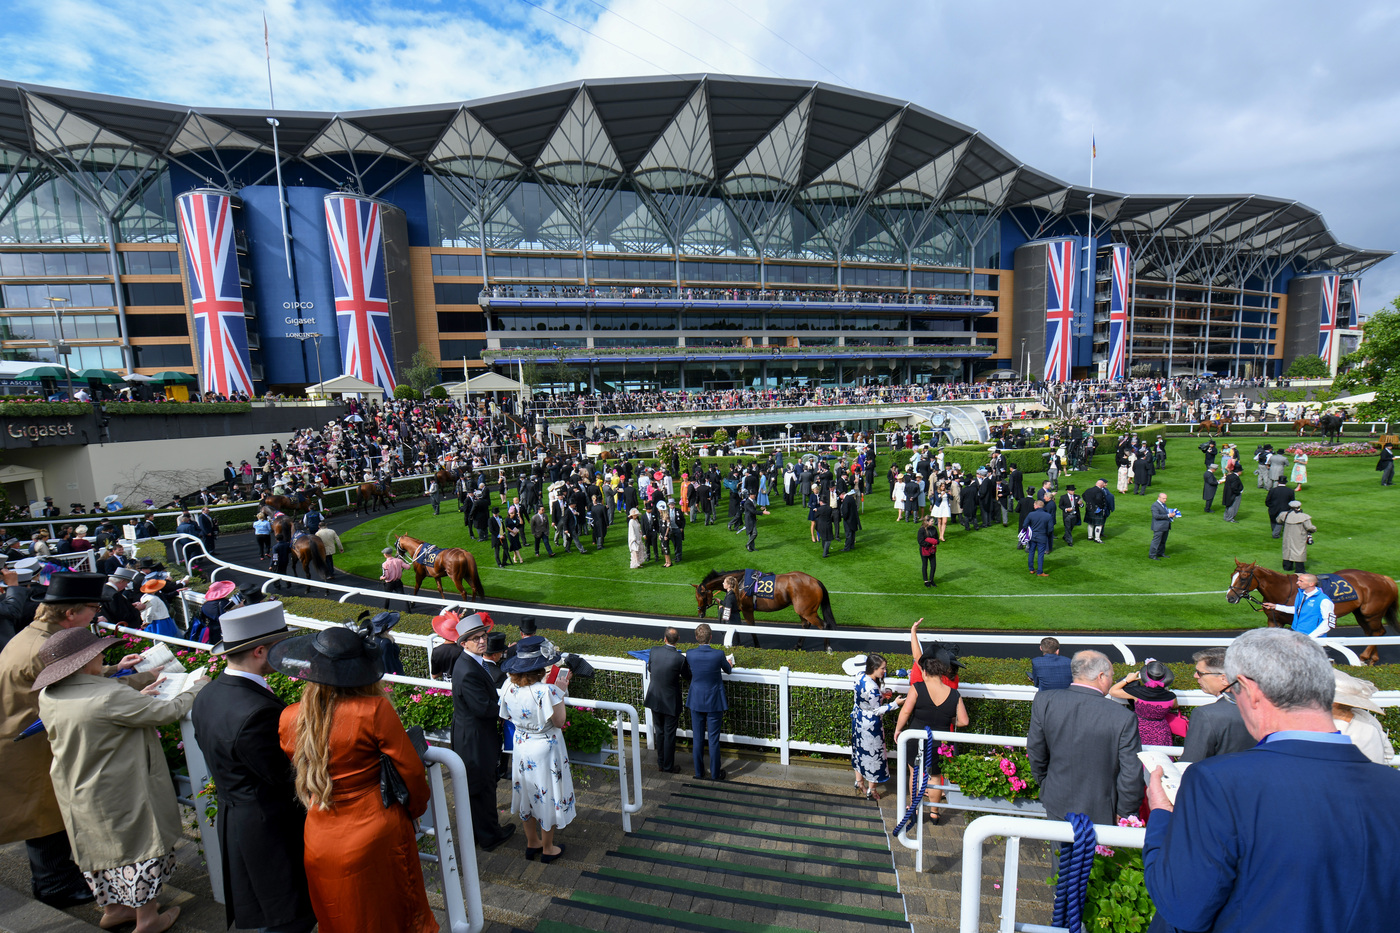 Longines Flat Racing Event: Longines celebrates elegance at Royal Ascot with Chi Ling Lin 15